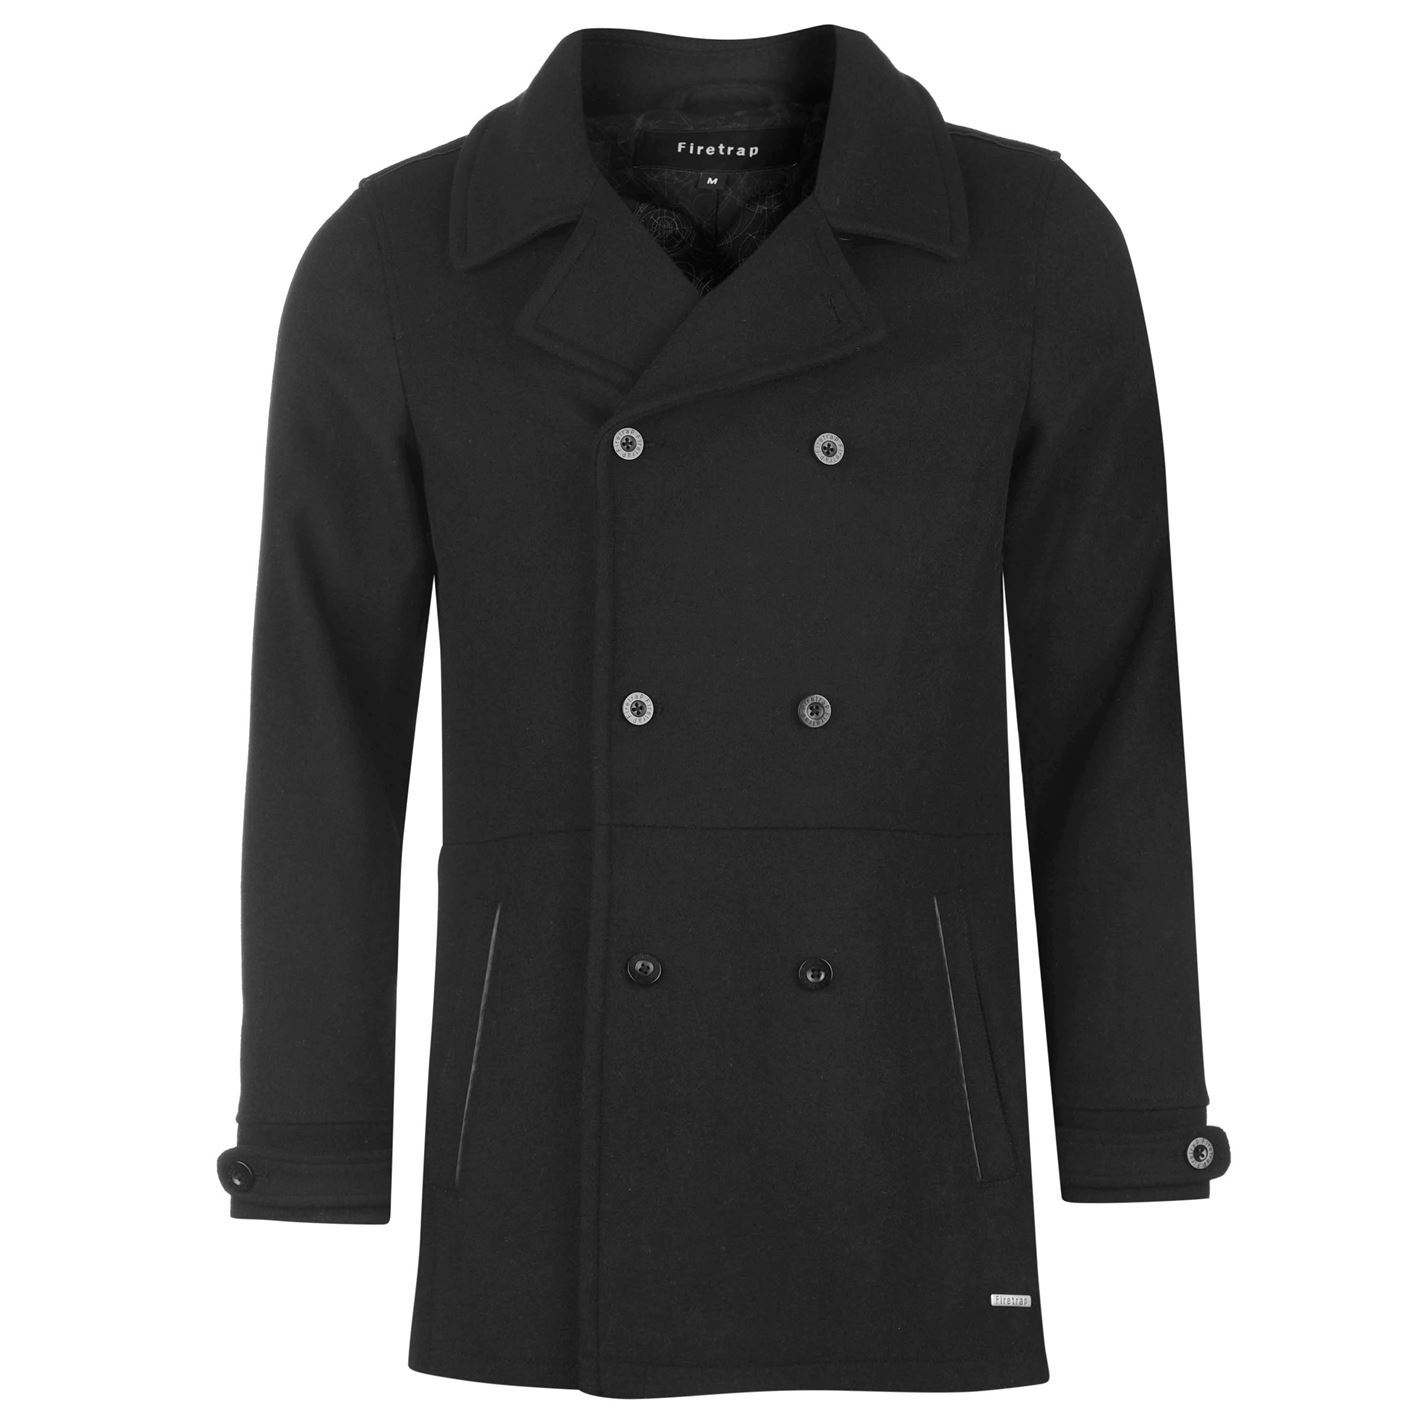 Rock Coat or Pea Coat?